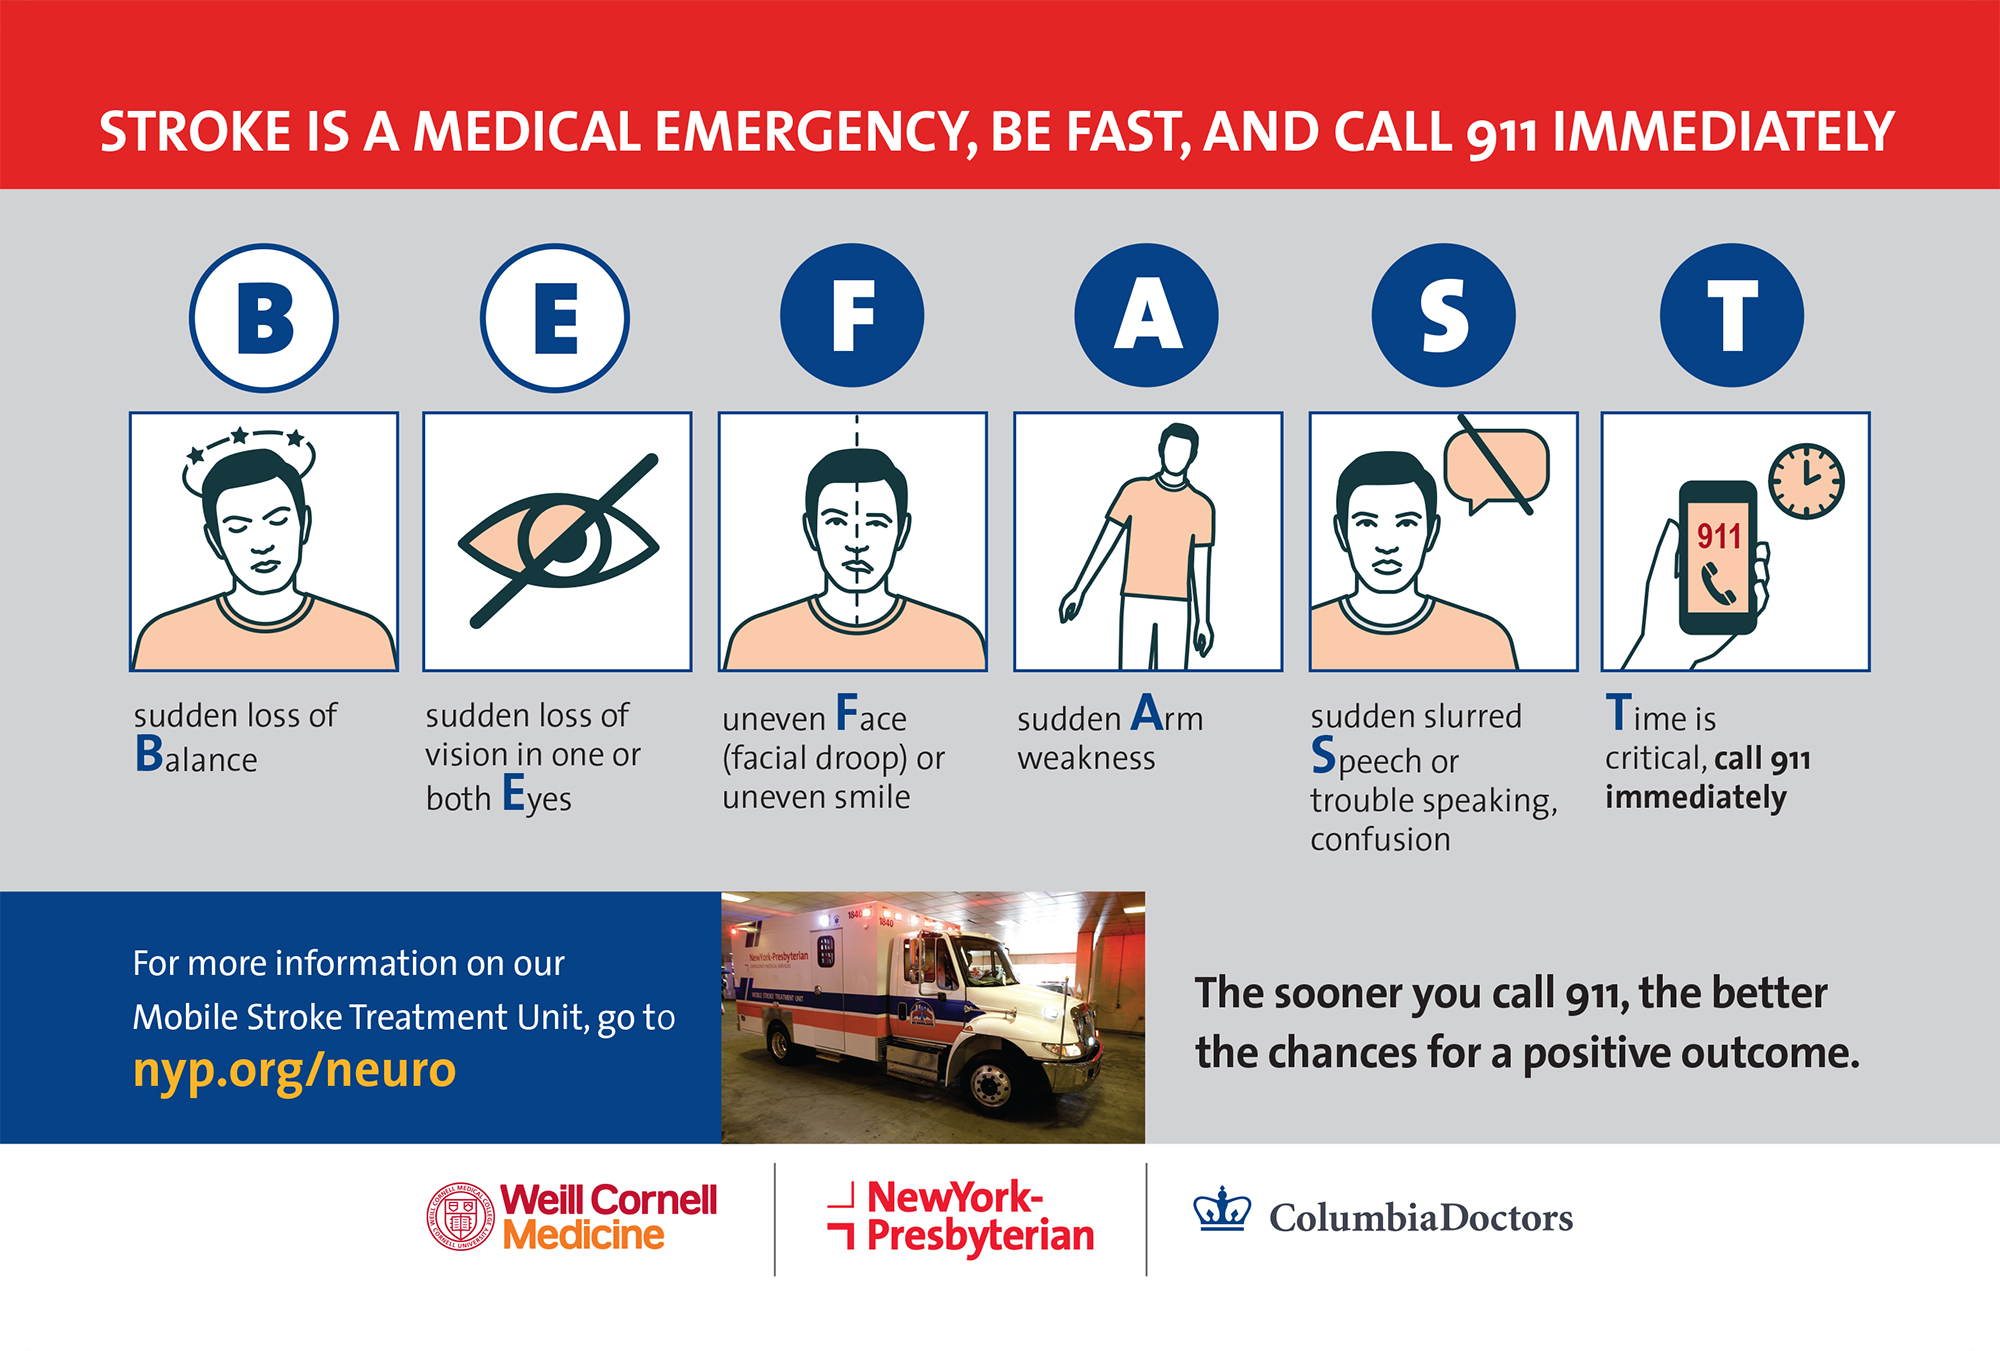 Stroke is a medical emergency, BE FAST, and call 9-1-1 immediately.